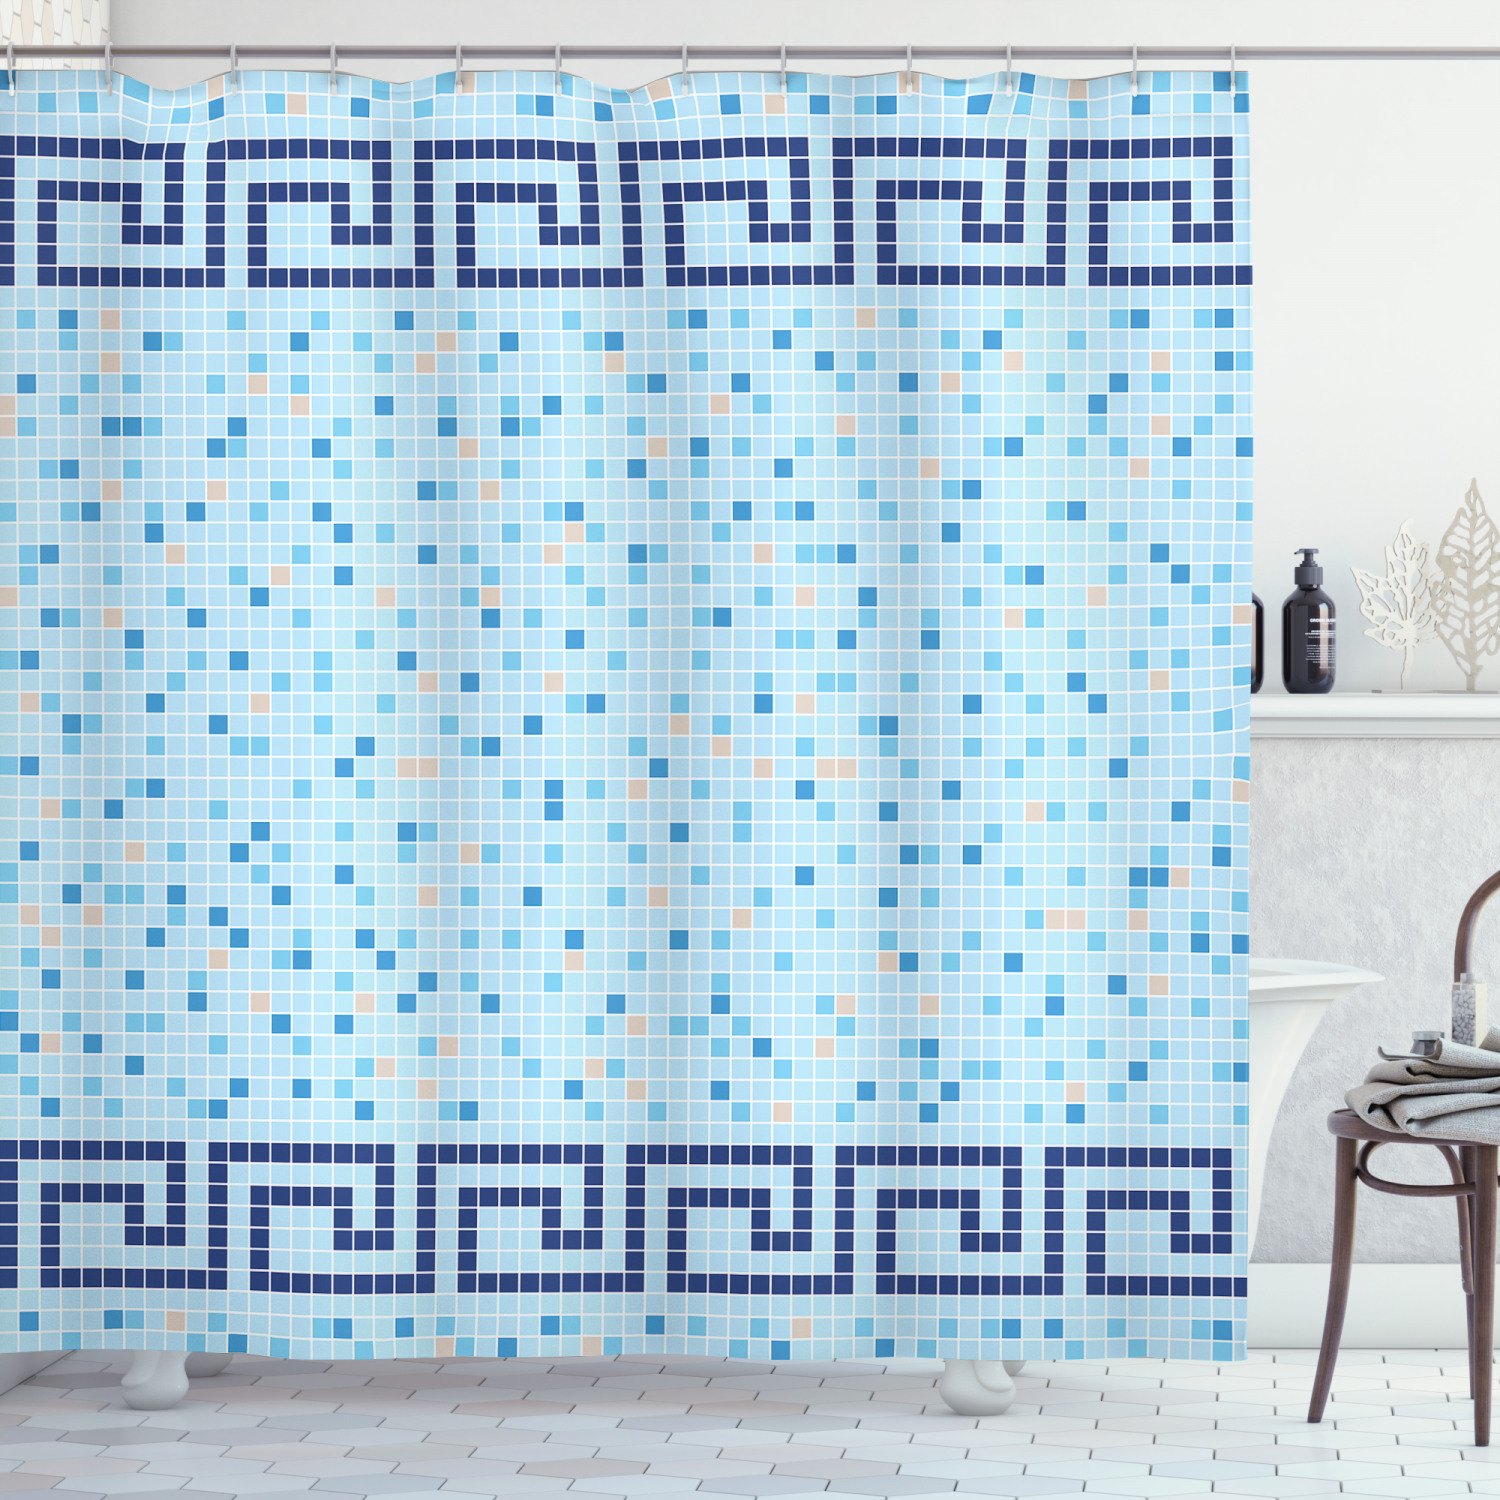 aqua shower curtain antique greek border mosaic tile squares abstract swimming pool design fabric bathroom set with hooks 69w x 84l inches extra